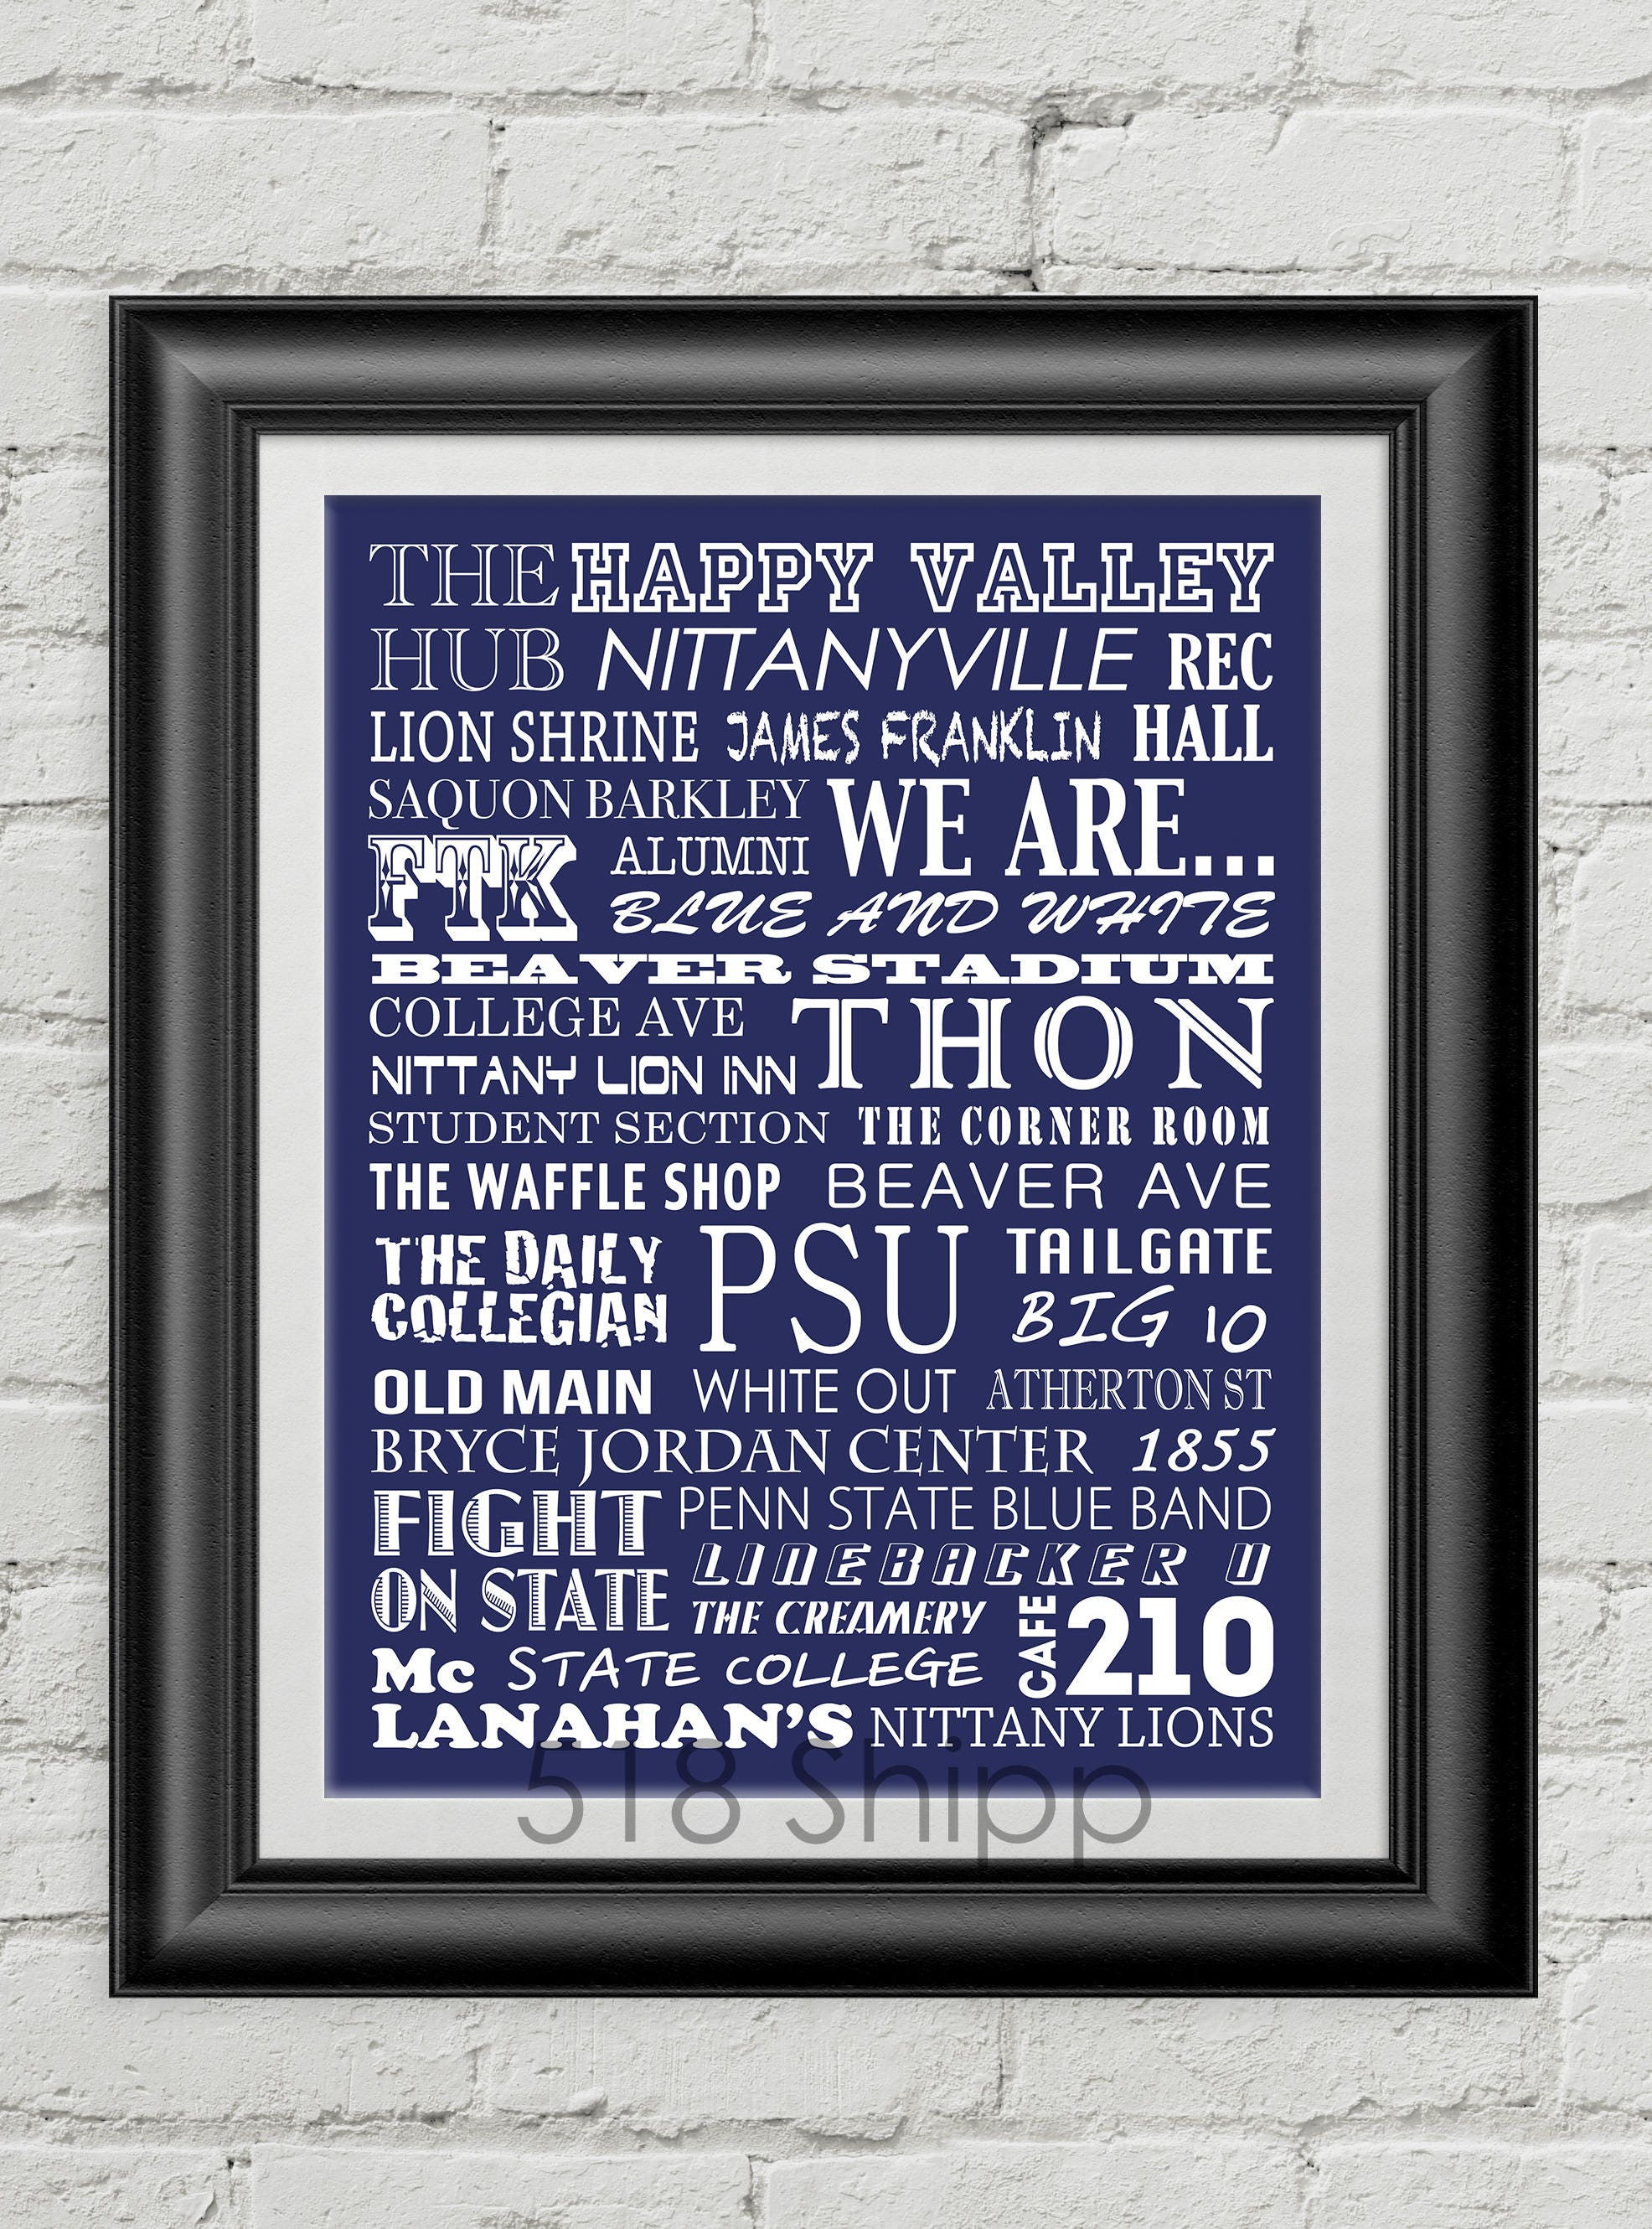 Penn State University Nittany Lions Subway Scroll Art Print